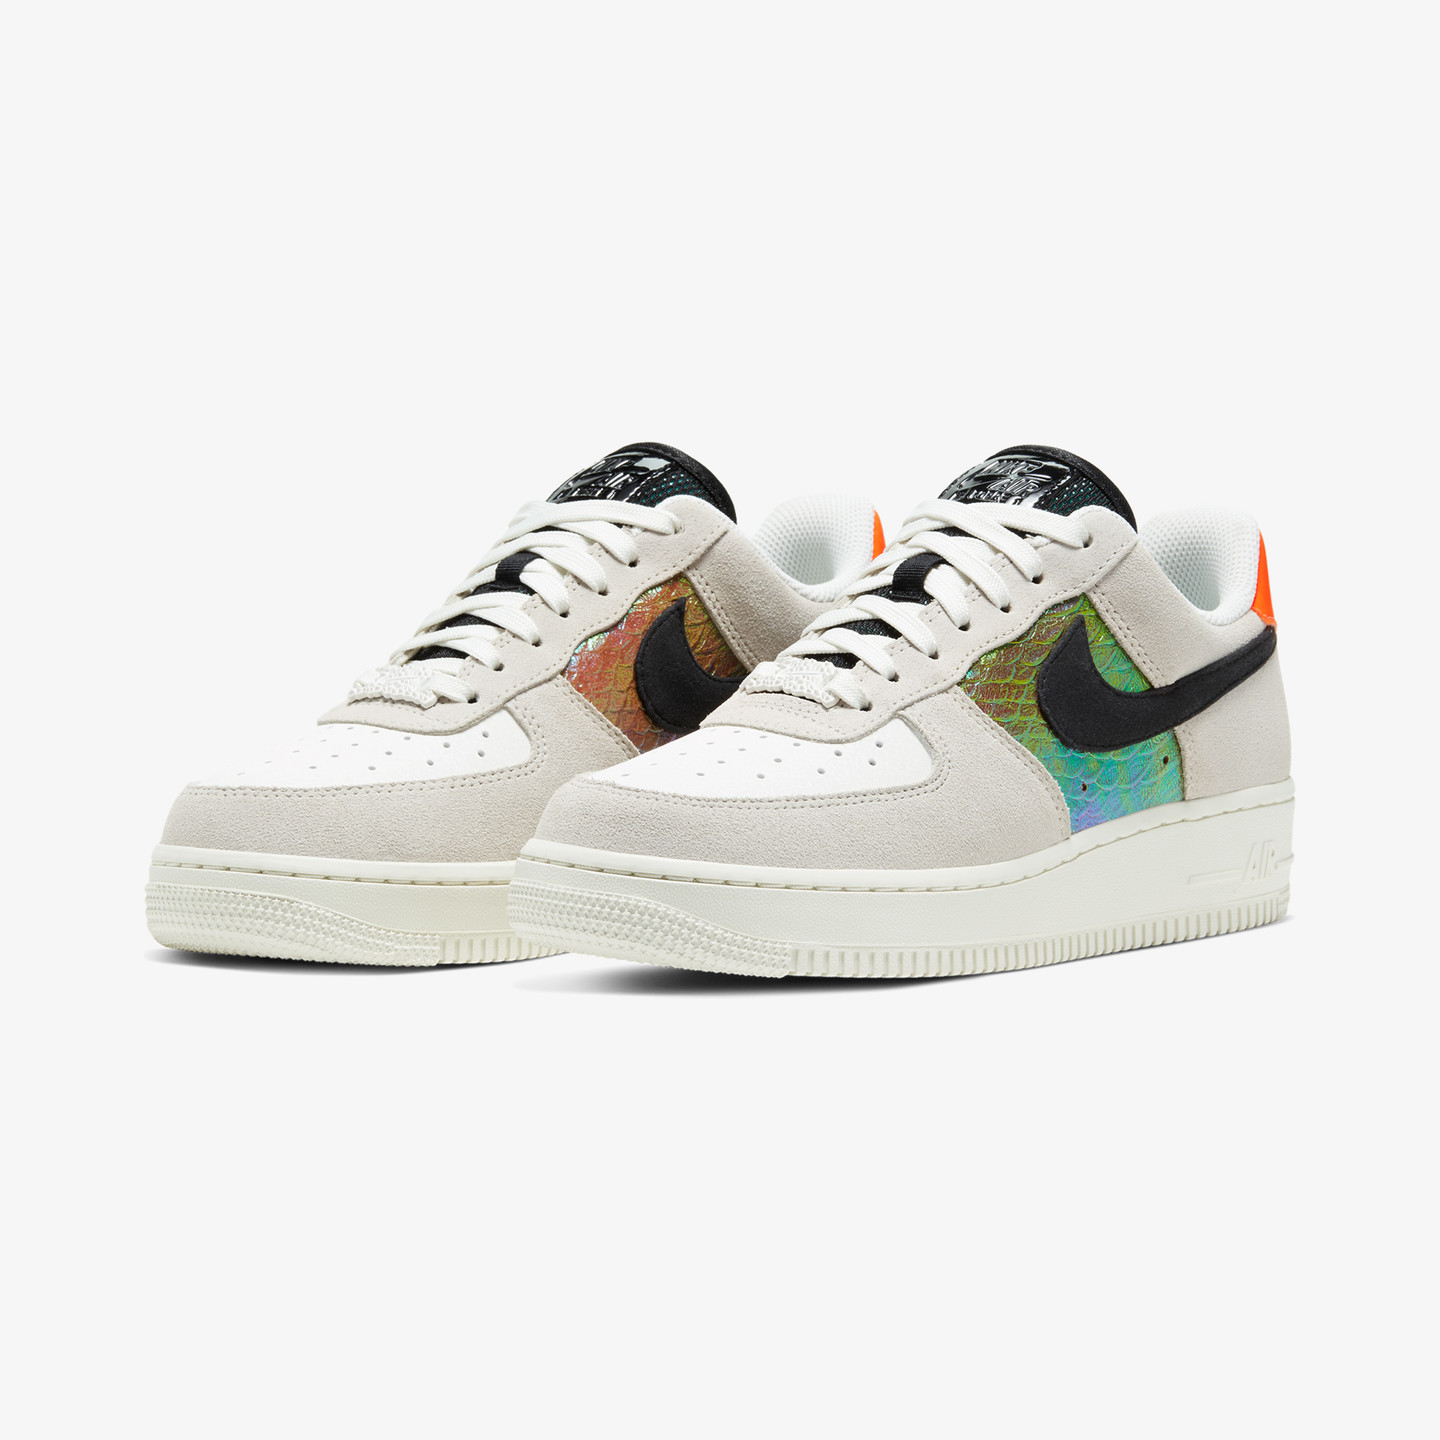 Nike Air Force 1 Low 'Reptile' Light Bone / Sail / Hyper Crimson / Black CW2657-001